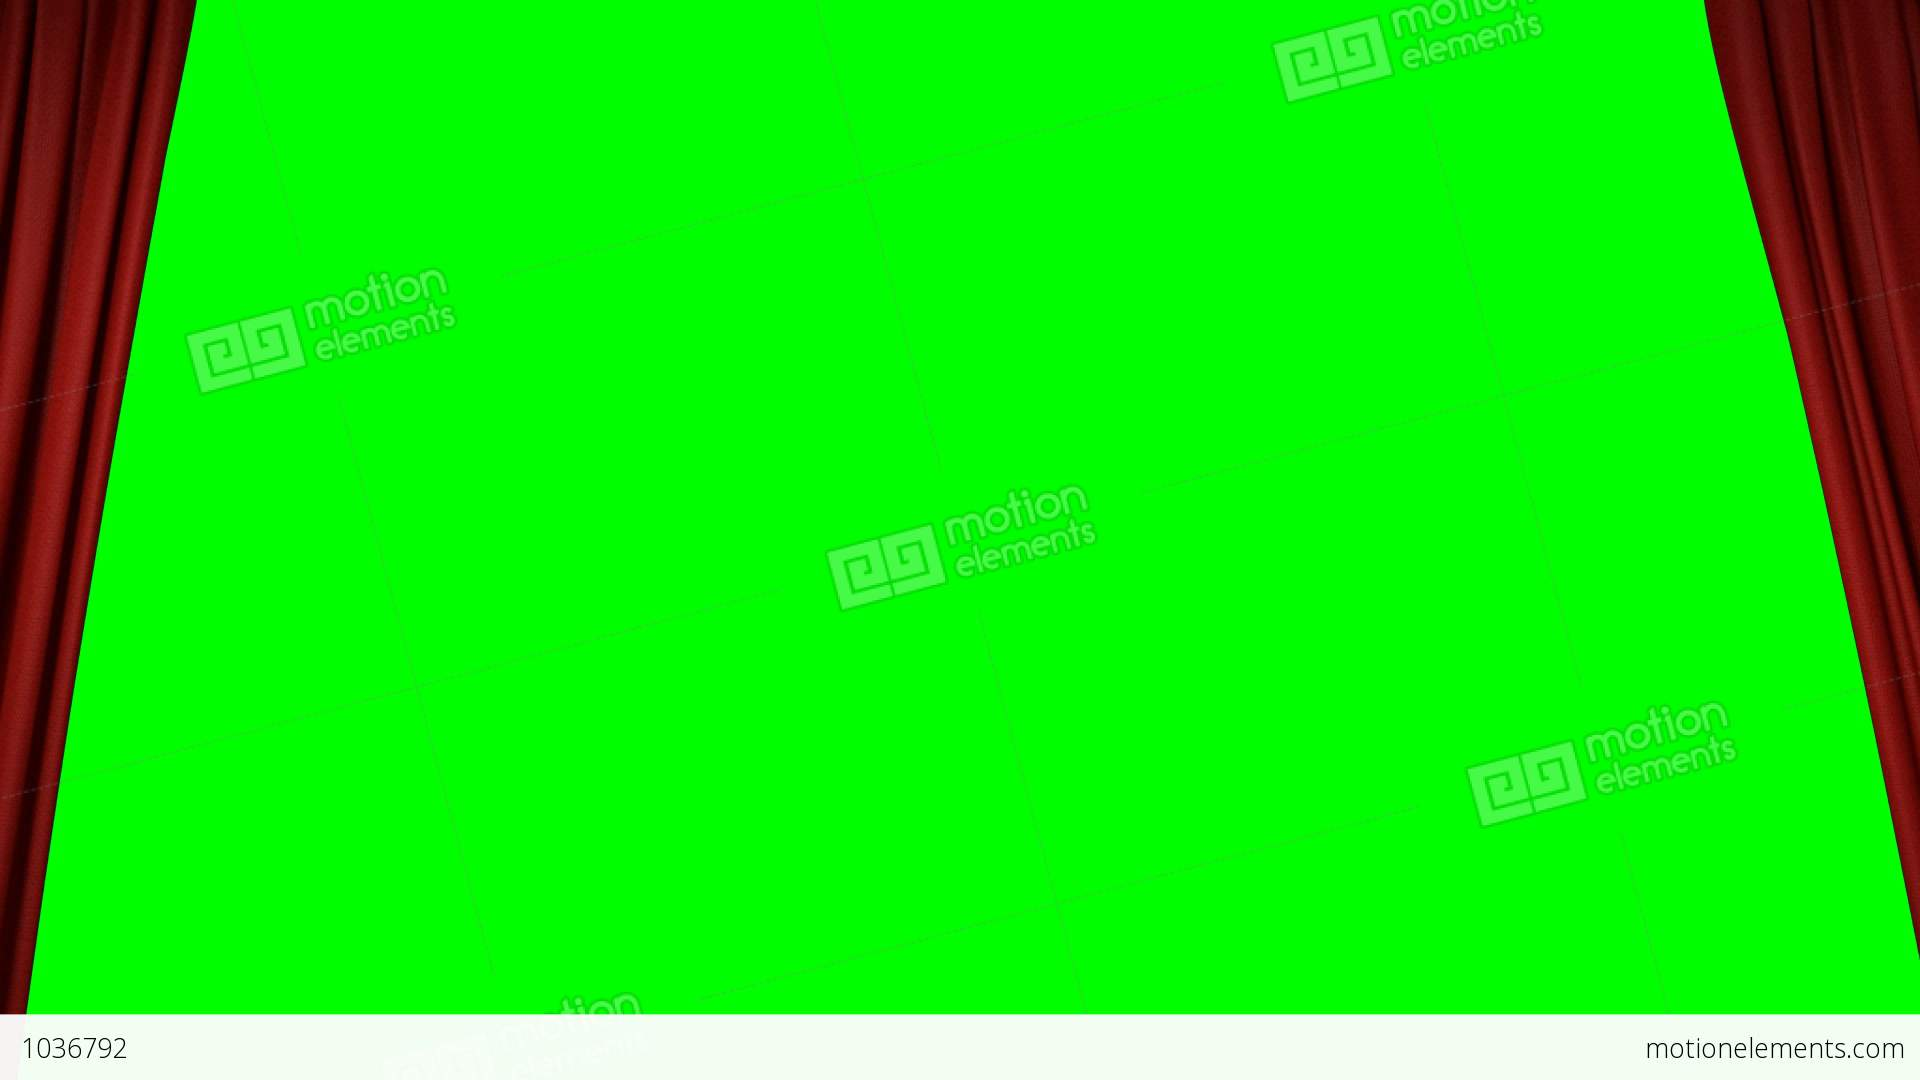 Opening and closing red curtain stock animation royalty free stock - Opening And Closing Red Curtain Stock Animation Royalty Free Stock Animation Library 1036792